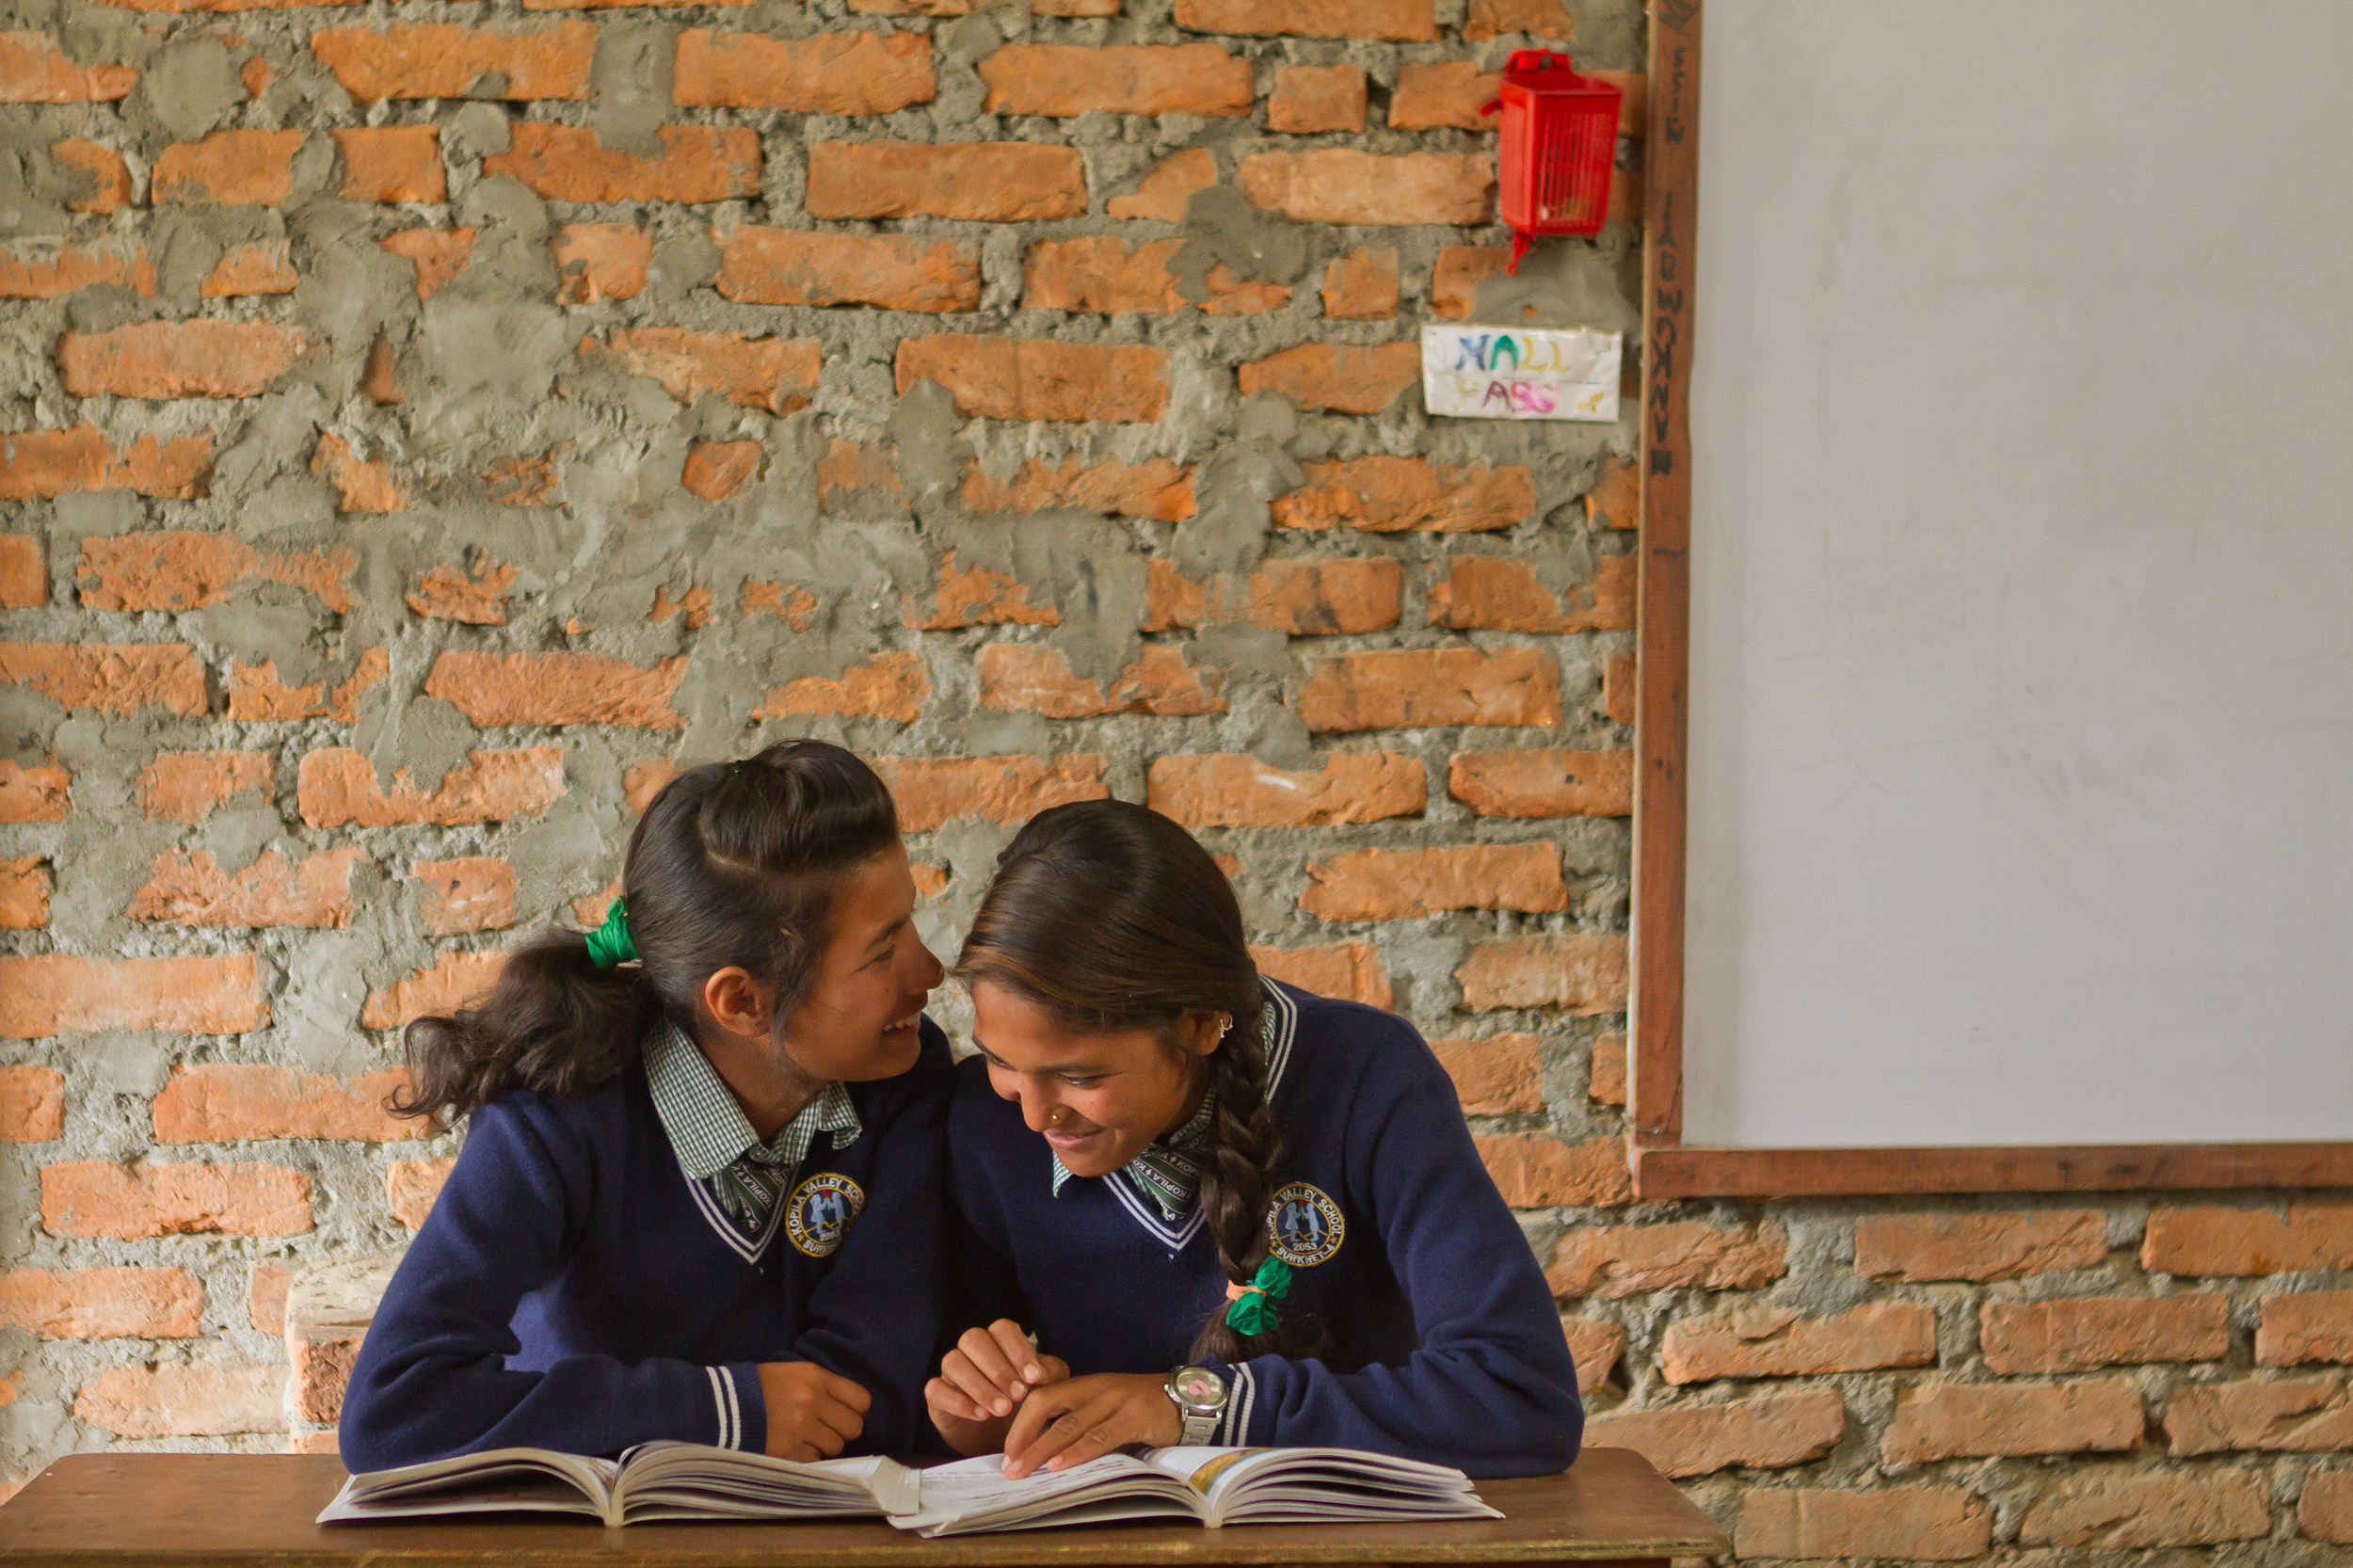 She's the First Scholars Kamala S. and Shanti S. whisper to one another at school in Nepal, March 2015. (photo by Kate Lord)